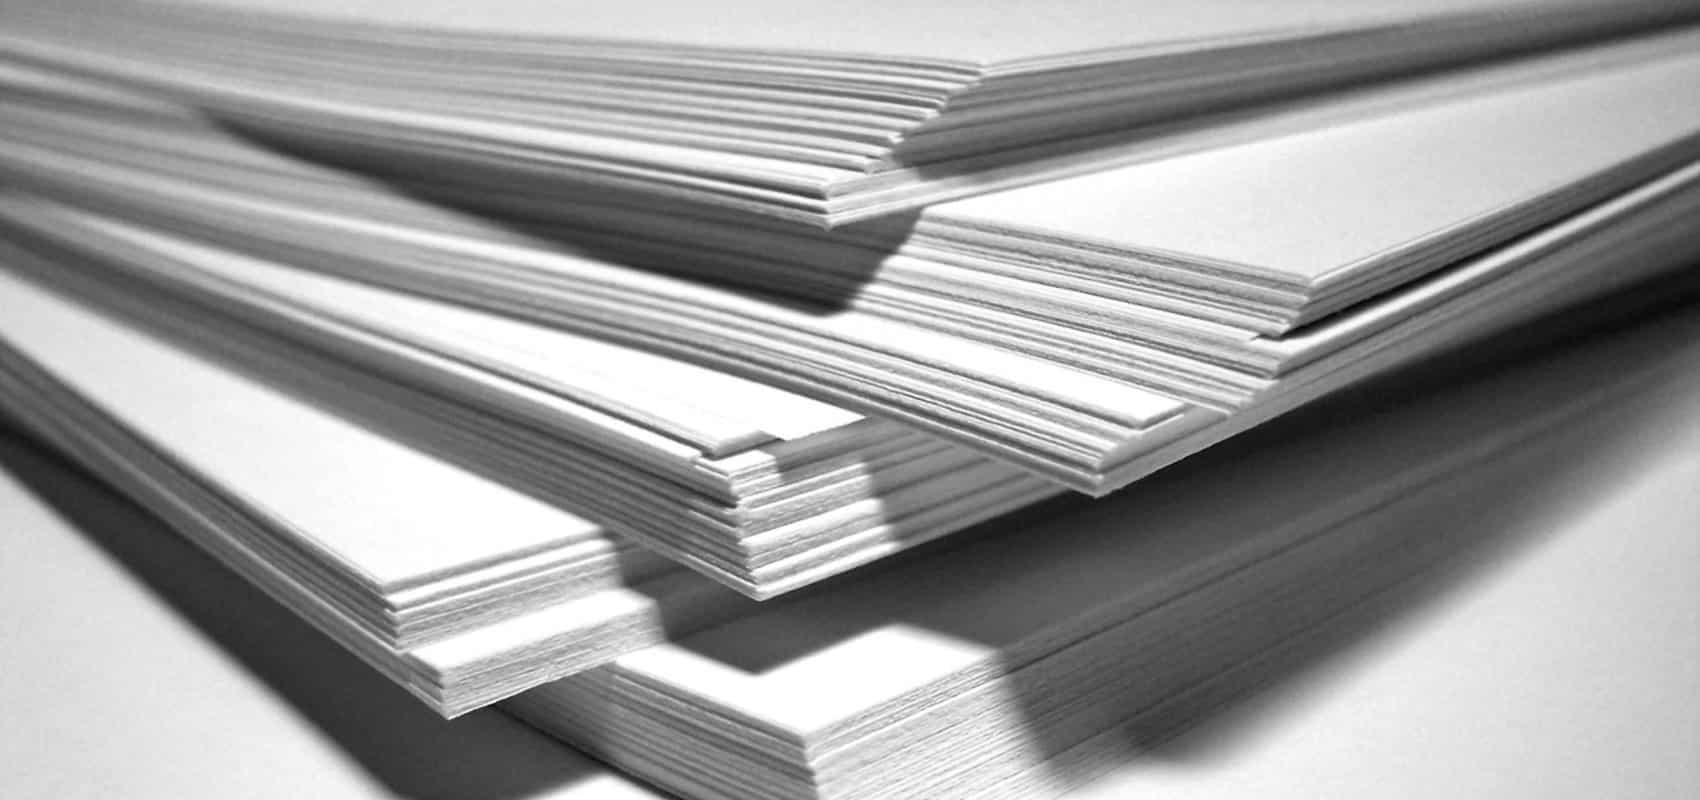 Cut sheets of Newsprint paper paper stacked ready for printing